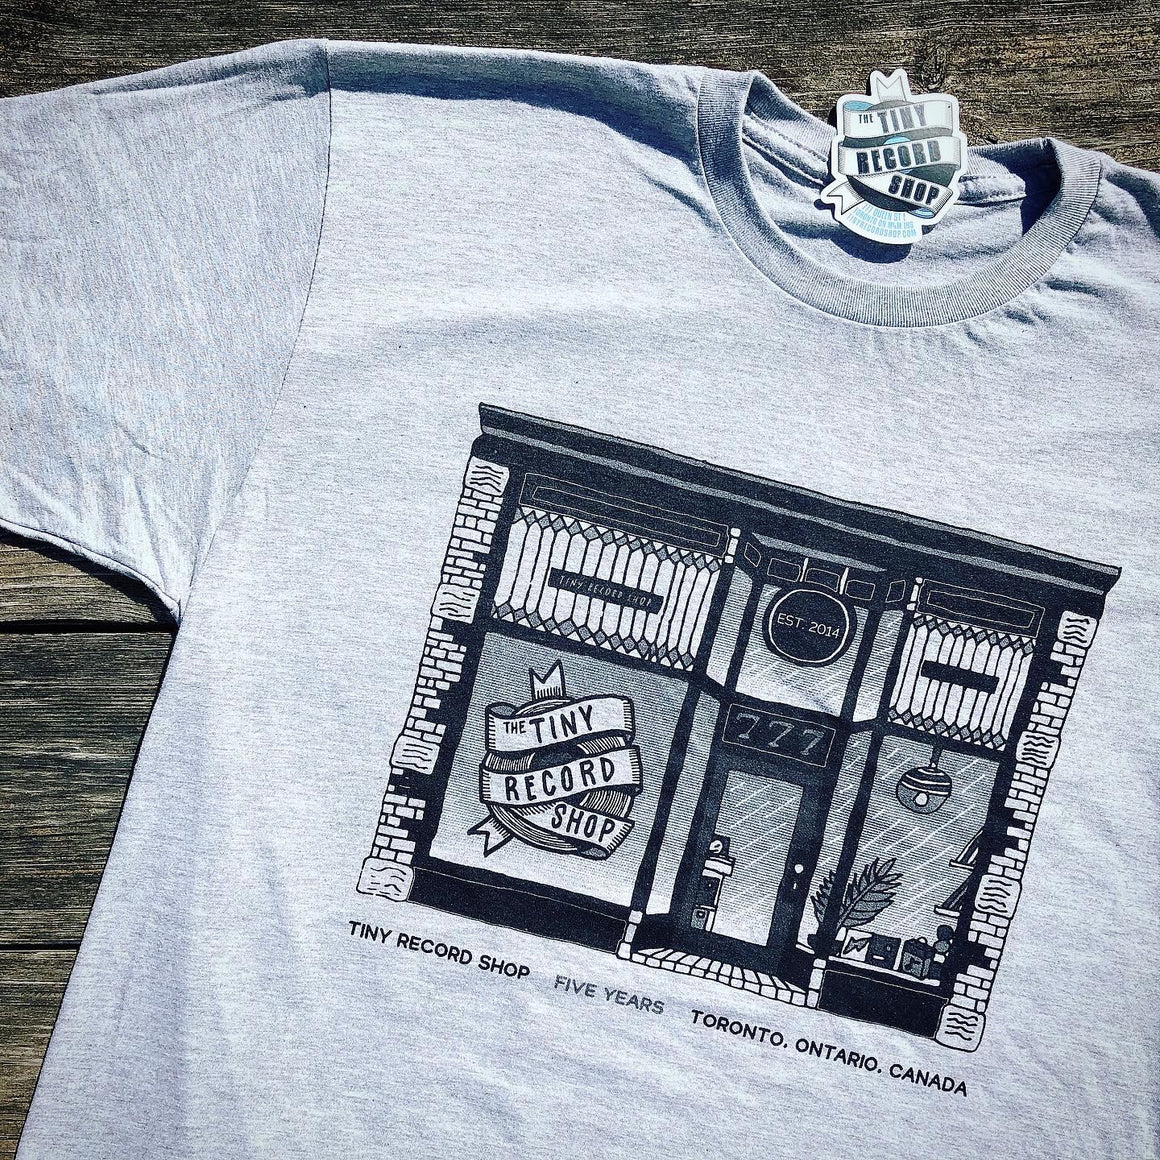 Tiny Record Shop 'Five Years' T-Shirt